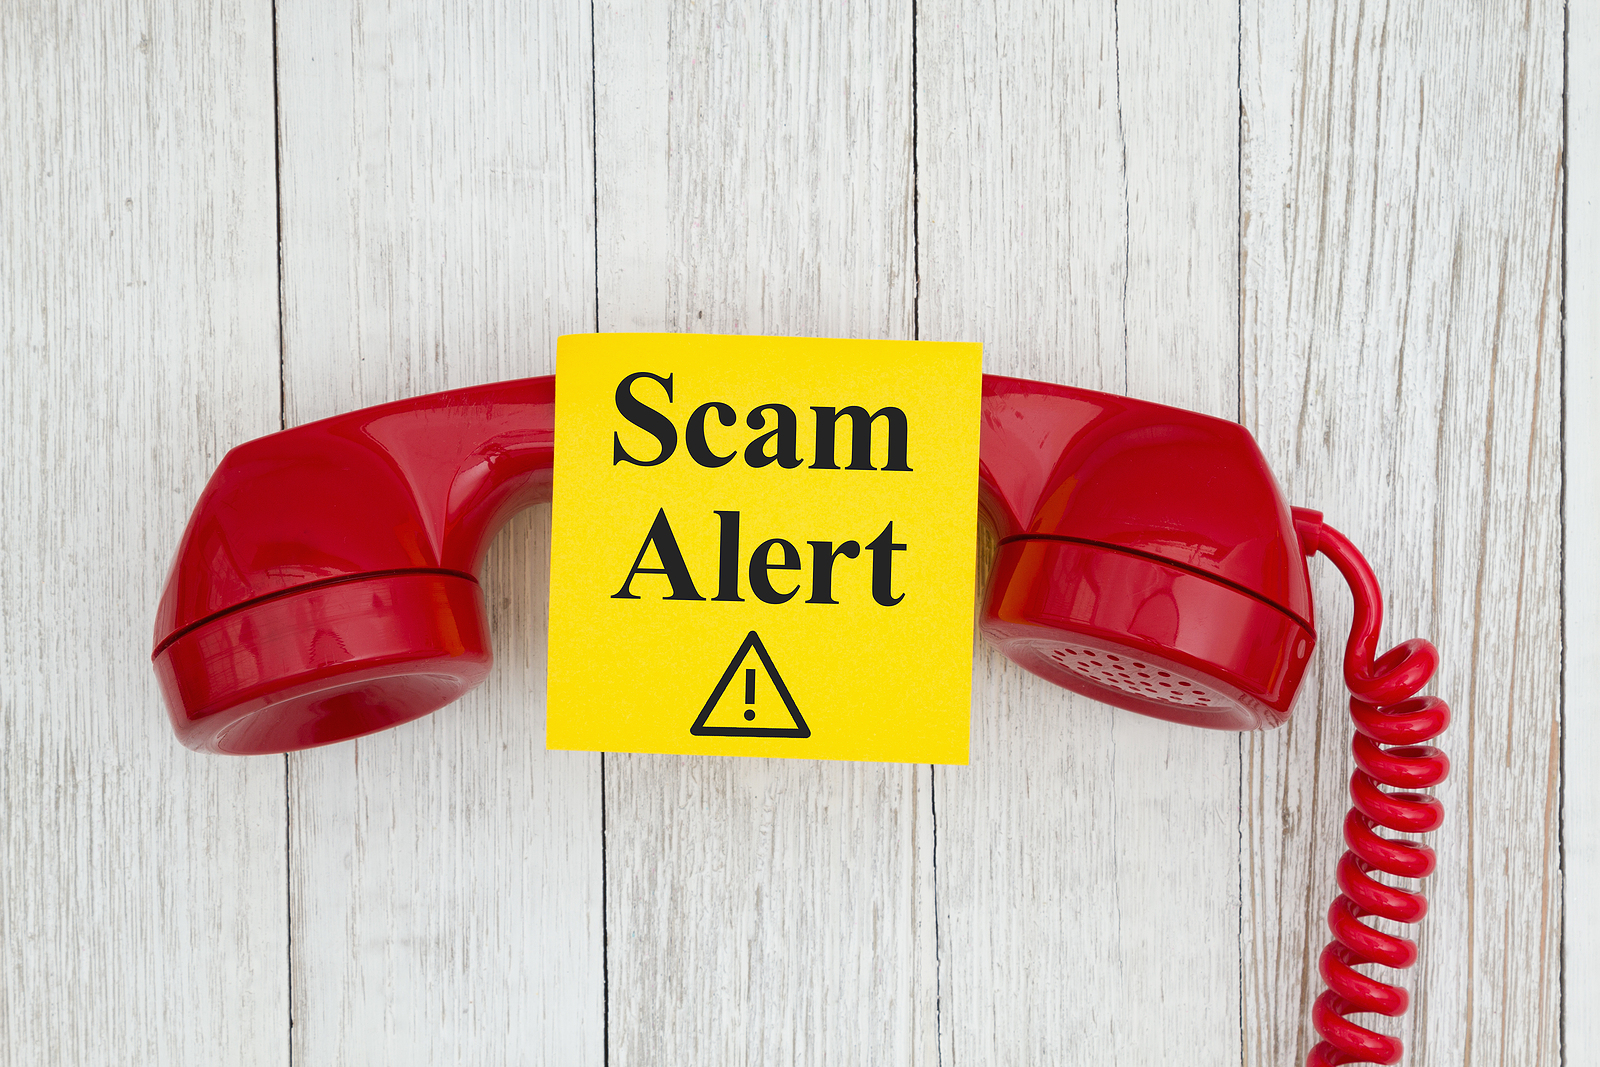 Scam Alert: Watch Out for these COVID-19 Scams - NFCC